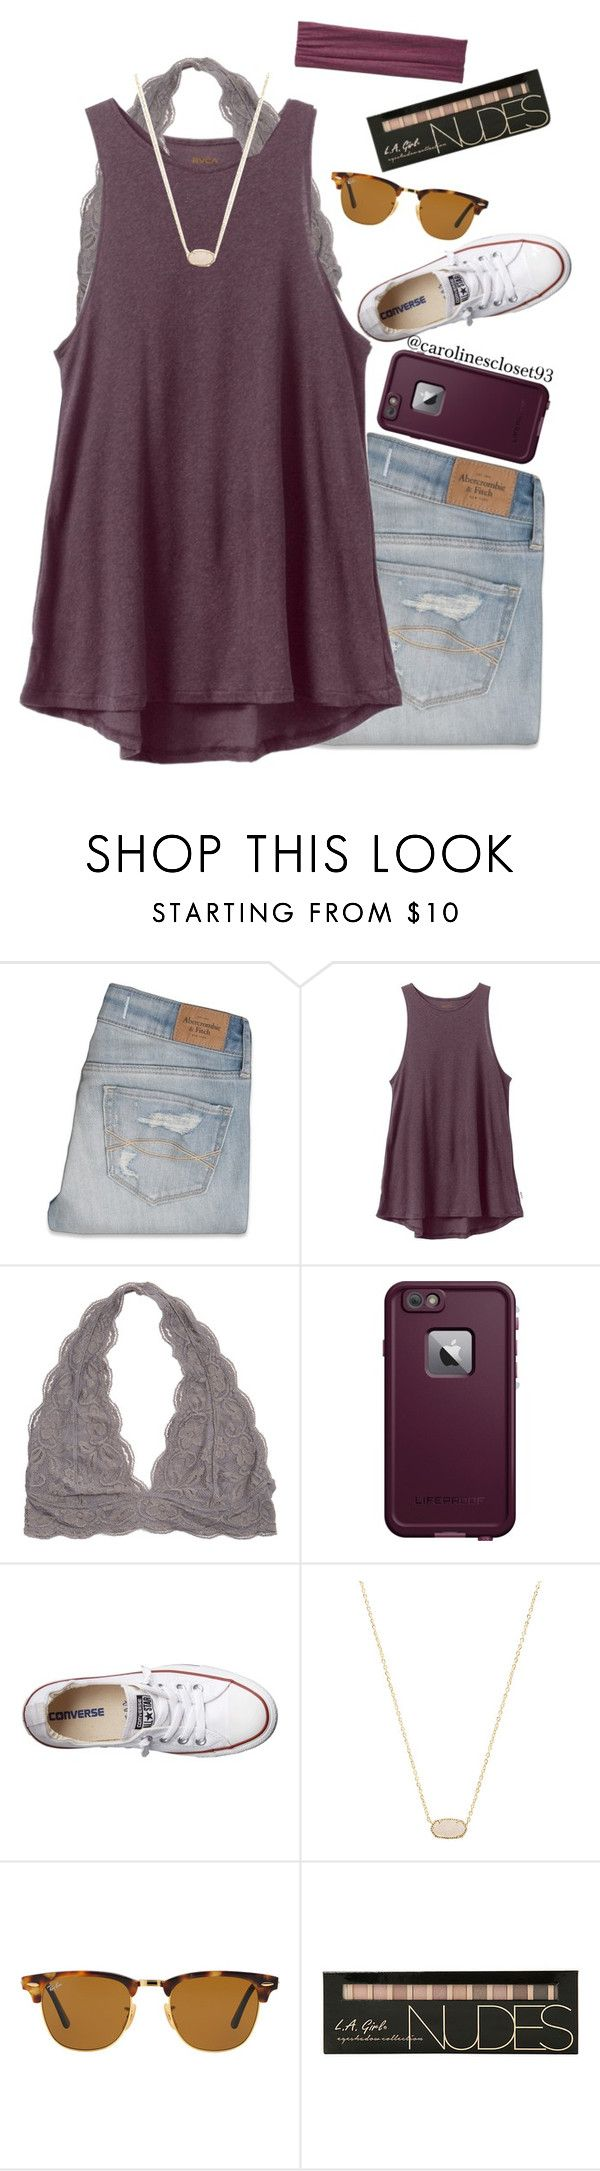 """""""Maroon"""" by carolinescloset93 ❤ liked on Polyvore featuring Abercrombie & Fitch, RVCA, LifeProof, Converse, Kendra Scott, Ray-Ban and Pistil"""